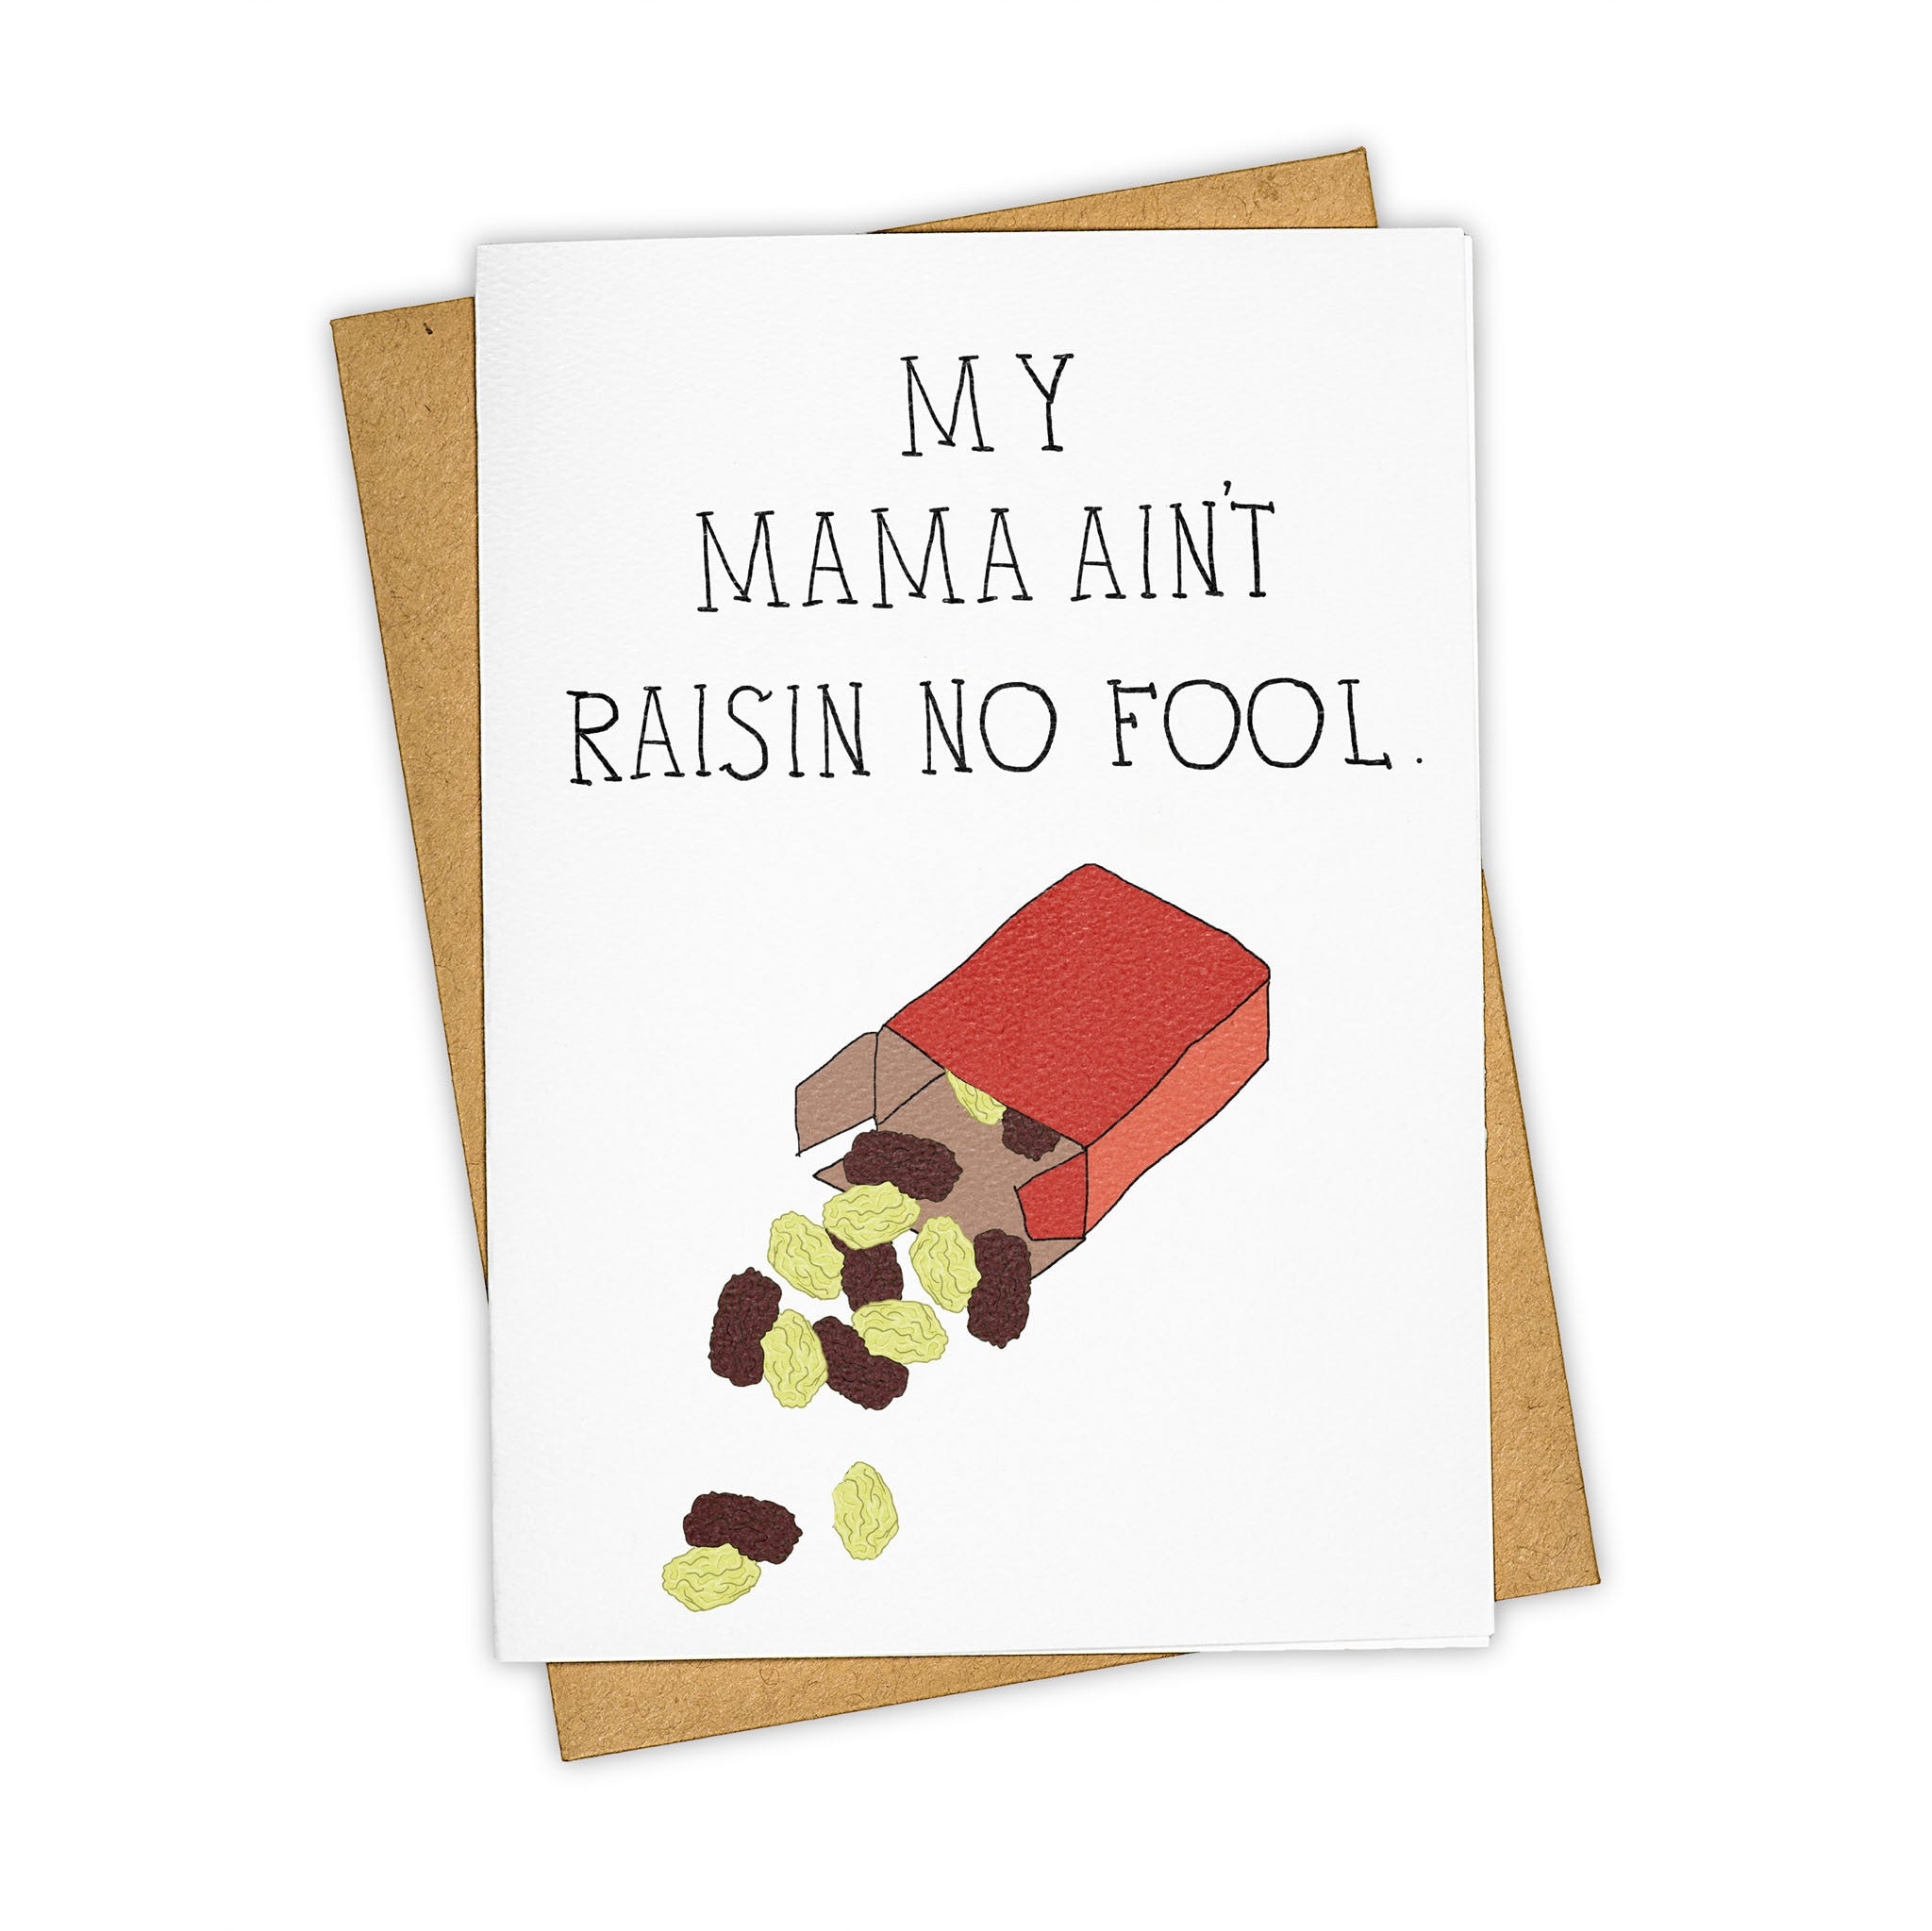 TAY HAM Raisin Mr. Tee Greeting Card Mother's Day